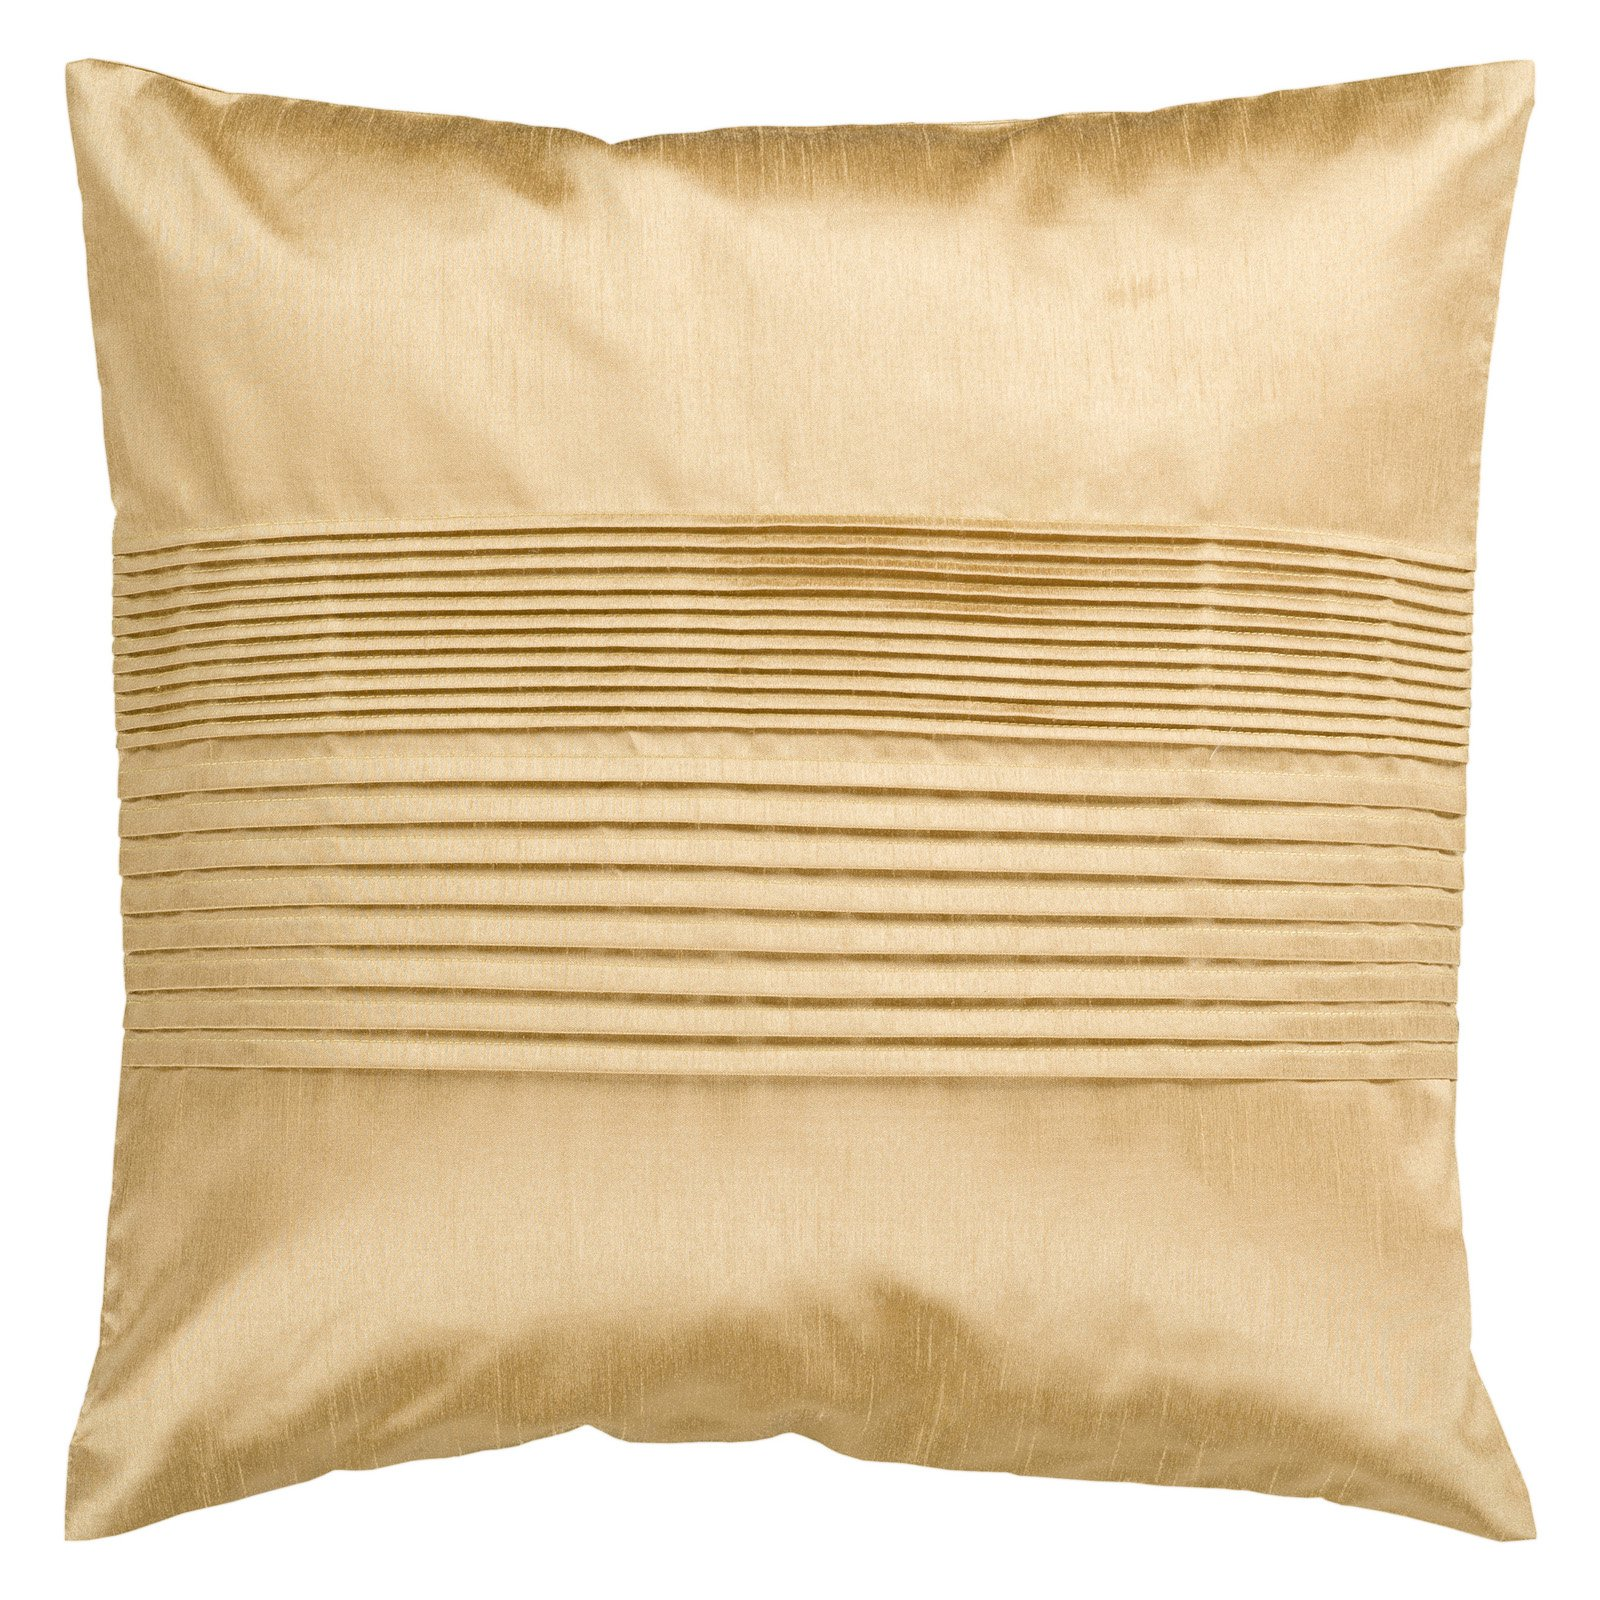 Surya Tracks Decorative Pillow - Gold